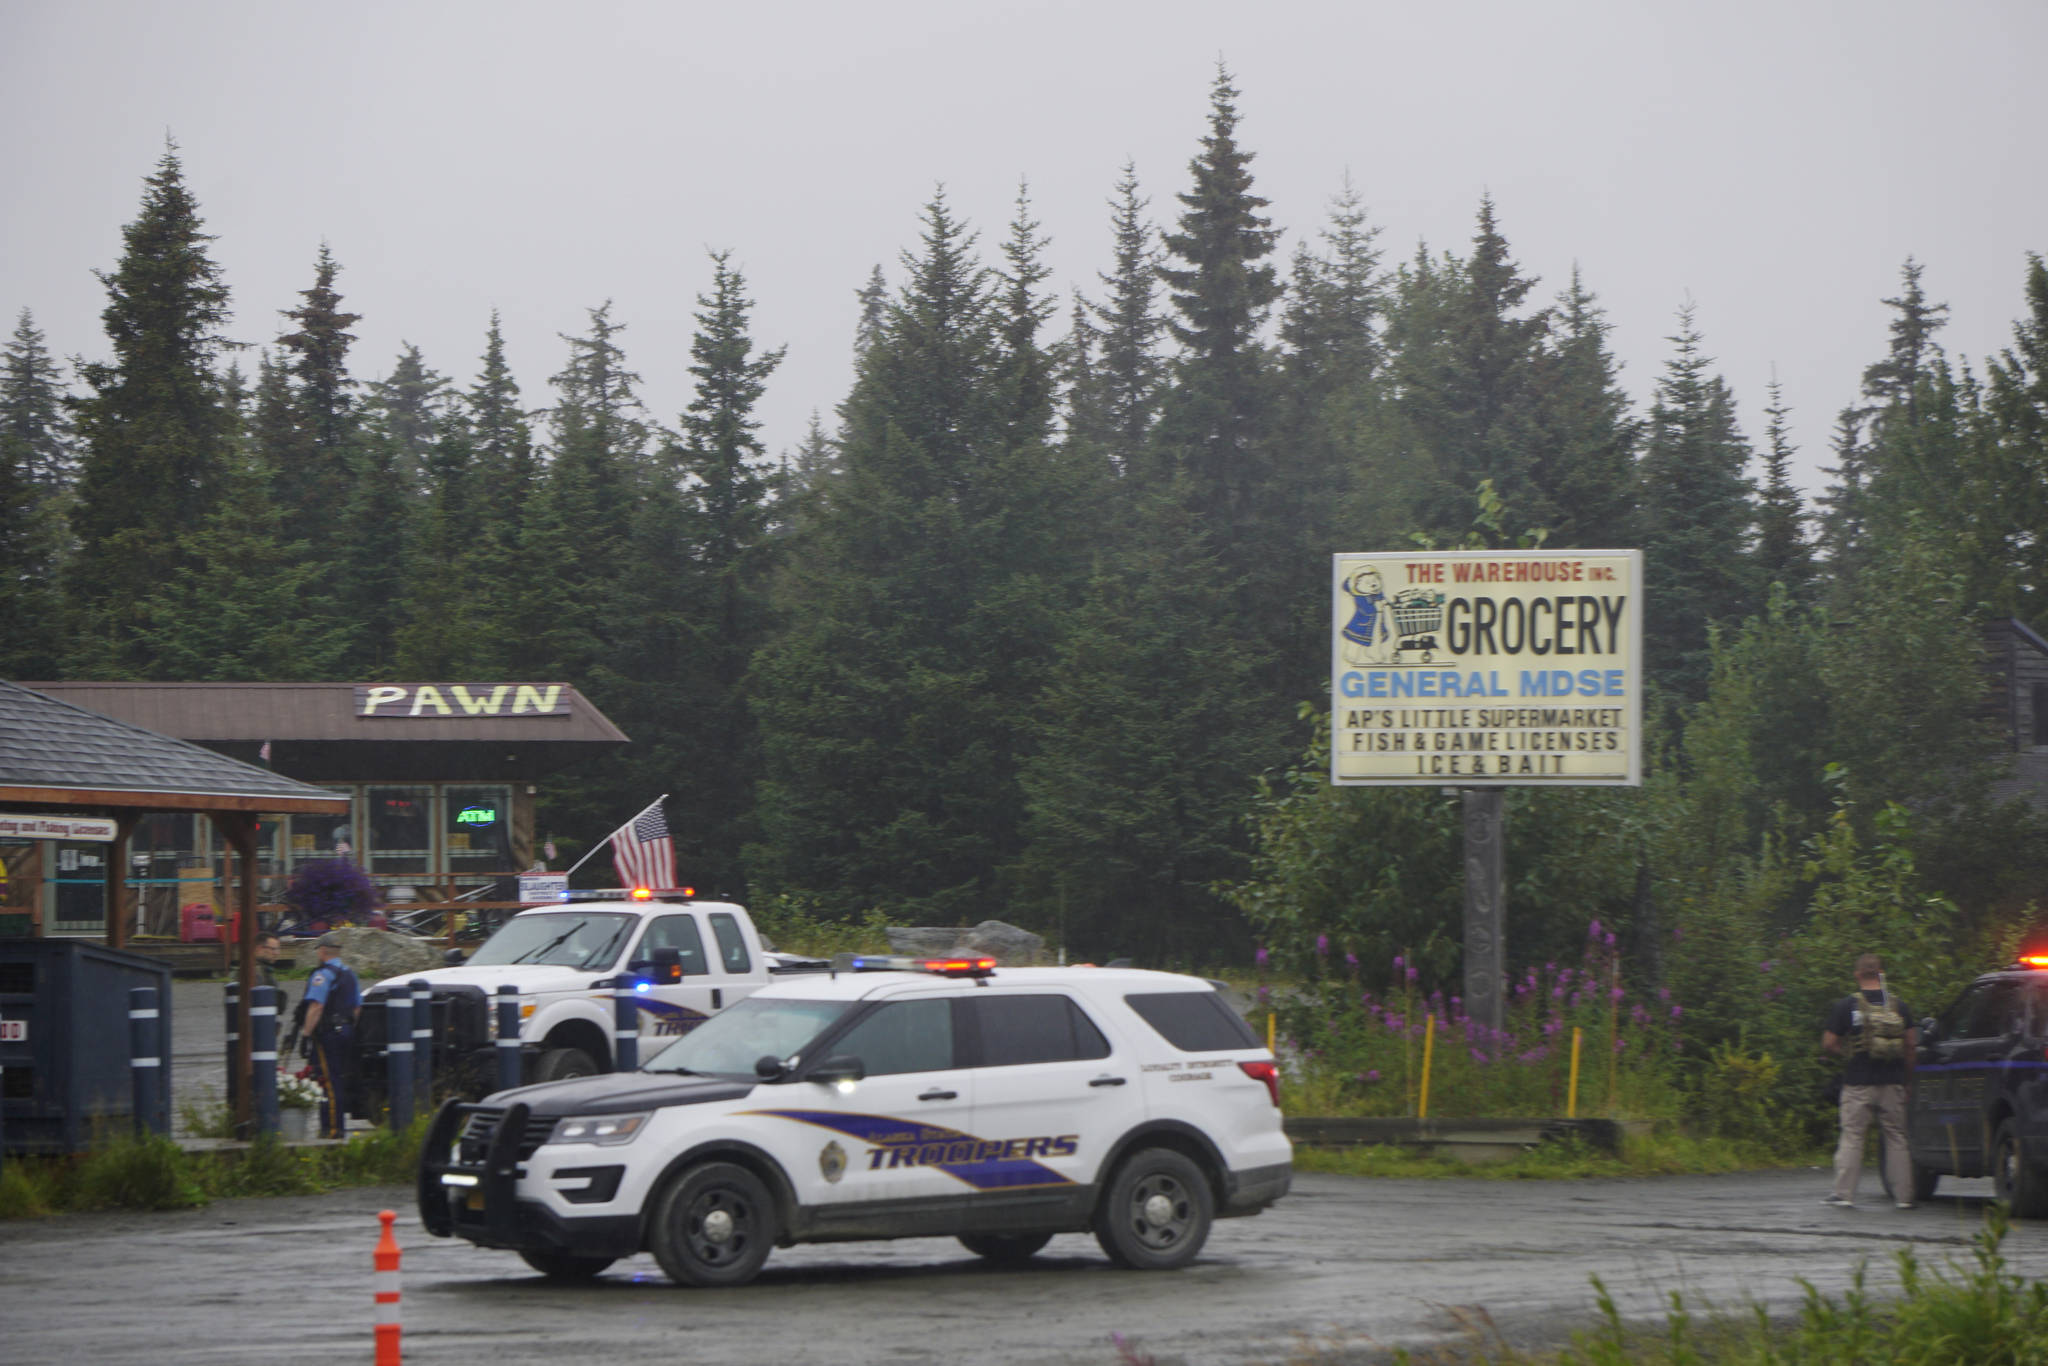 Alaska State Troopers investigate a shooting scene on Monday, Aug. 23, 2021, at the Anchor Point Warehouse in Anchor Point, Alaska at the store on the Sterling Highway in which an Alaska State Trooper was shot. Troopers were searching for the alleged shooter, Bret Herrick, 60. (Photo by Michael Armstrong/Homer News)